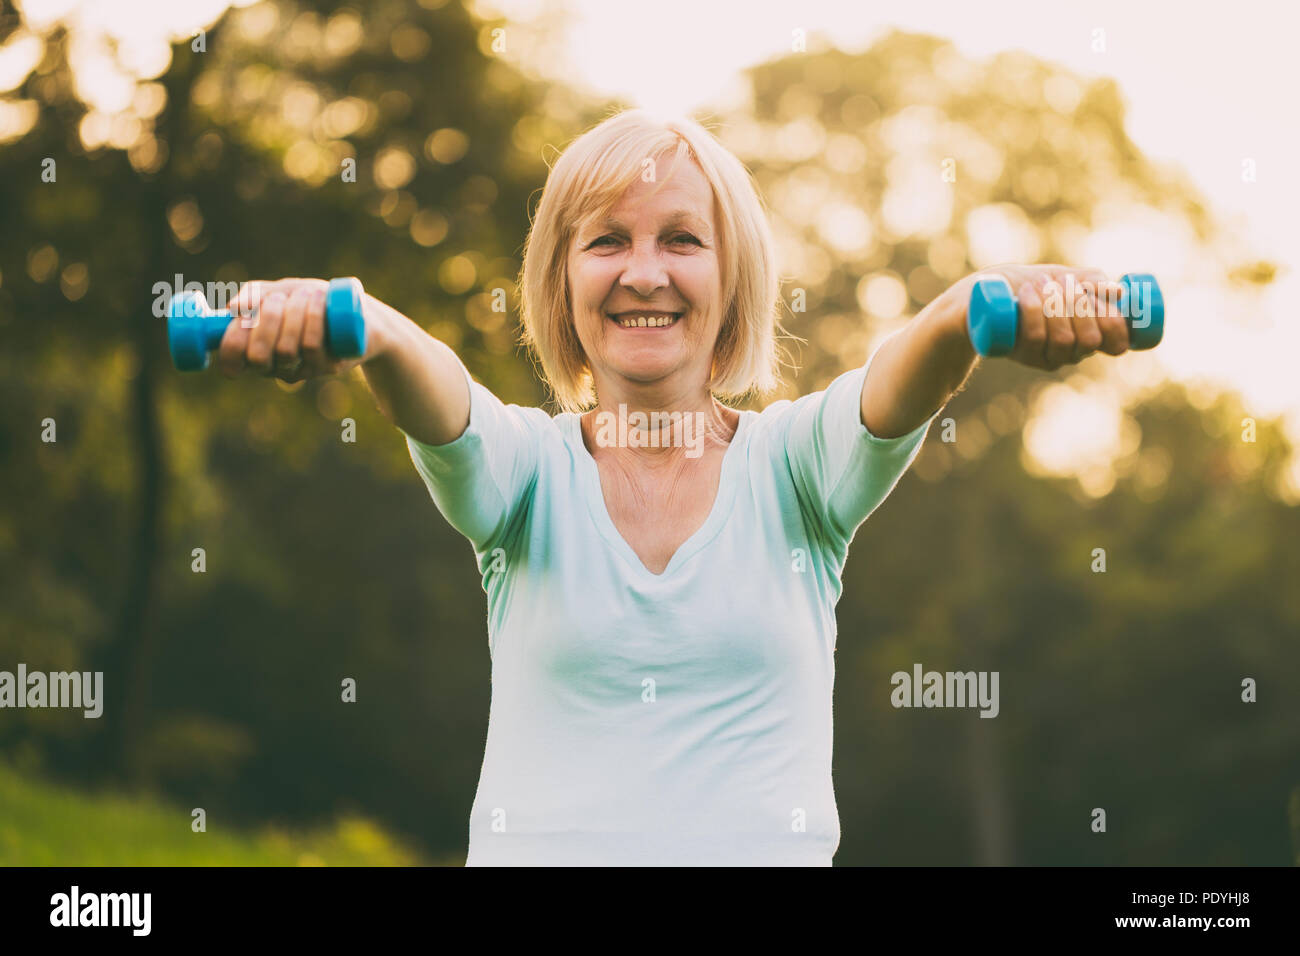 Sporty woman exercising with weights outdoor.Image est volontairement tonique. Photo Stock